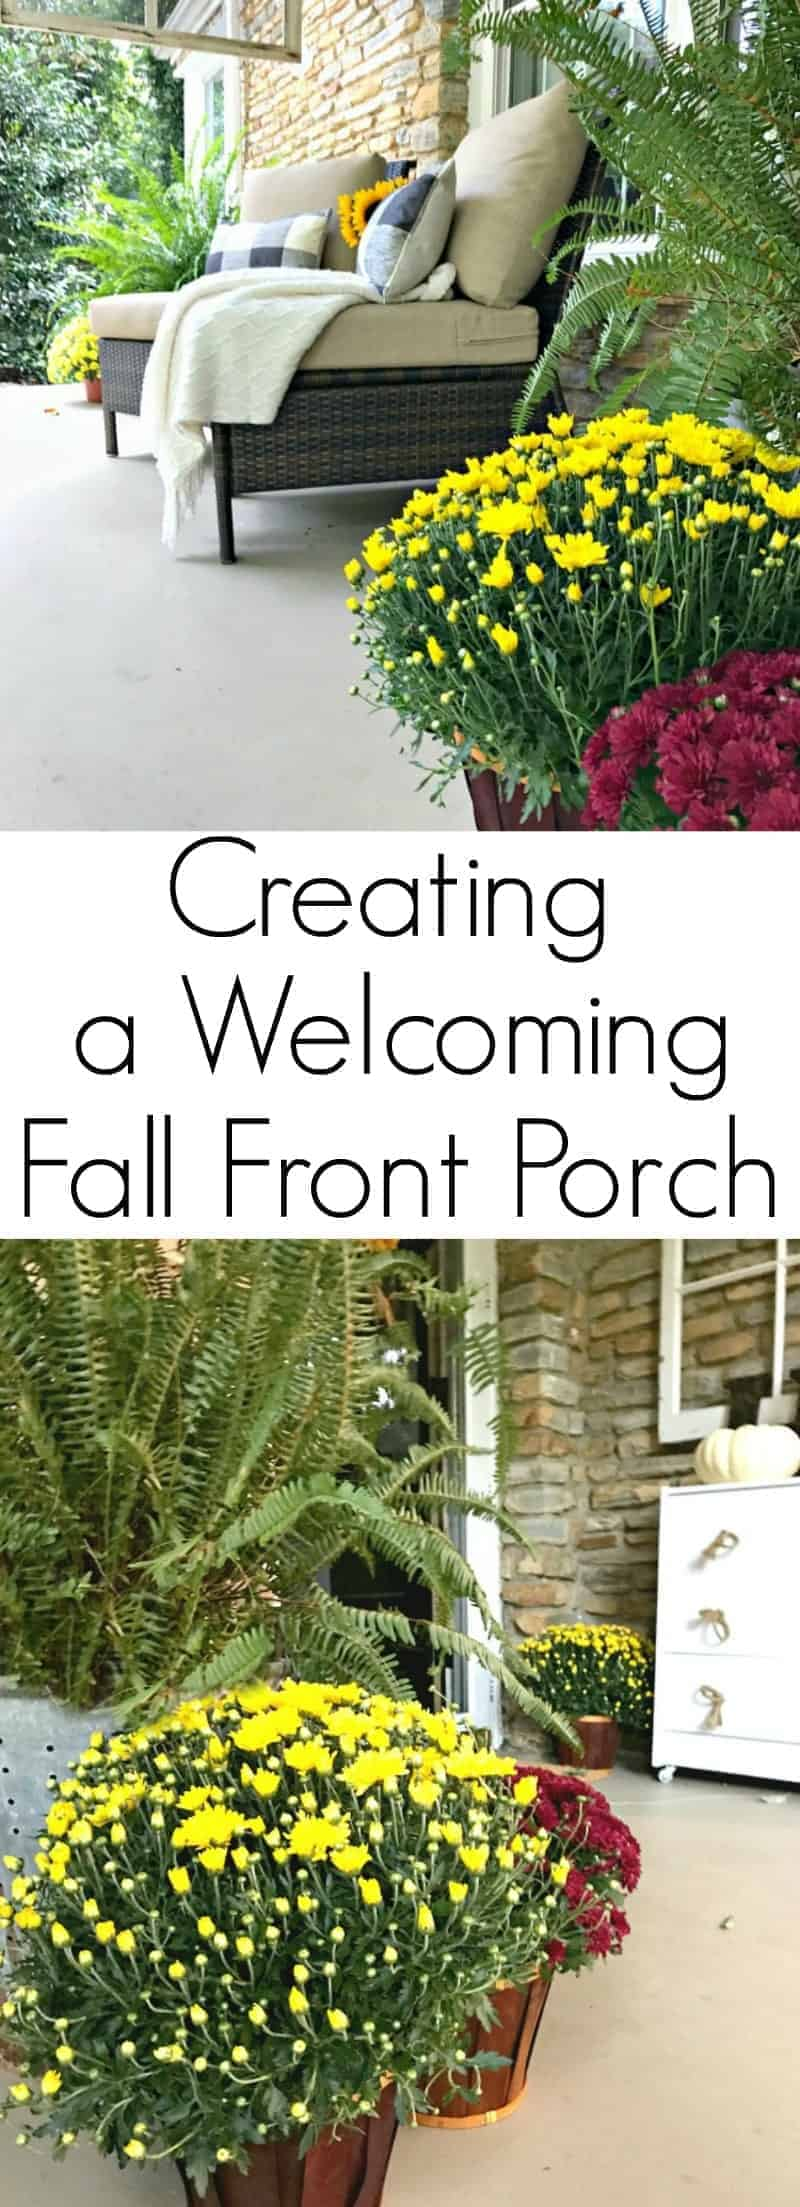 5 tips and decorating ideas for creating a welcoming fall front porch for friends and visitors.